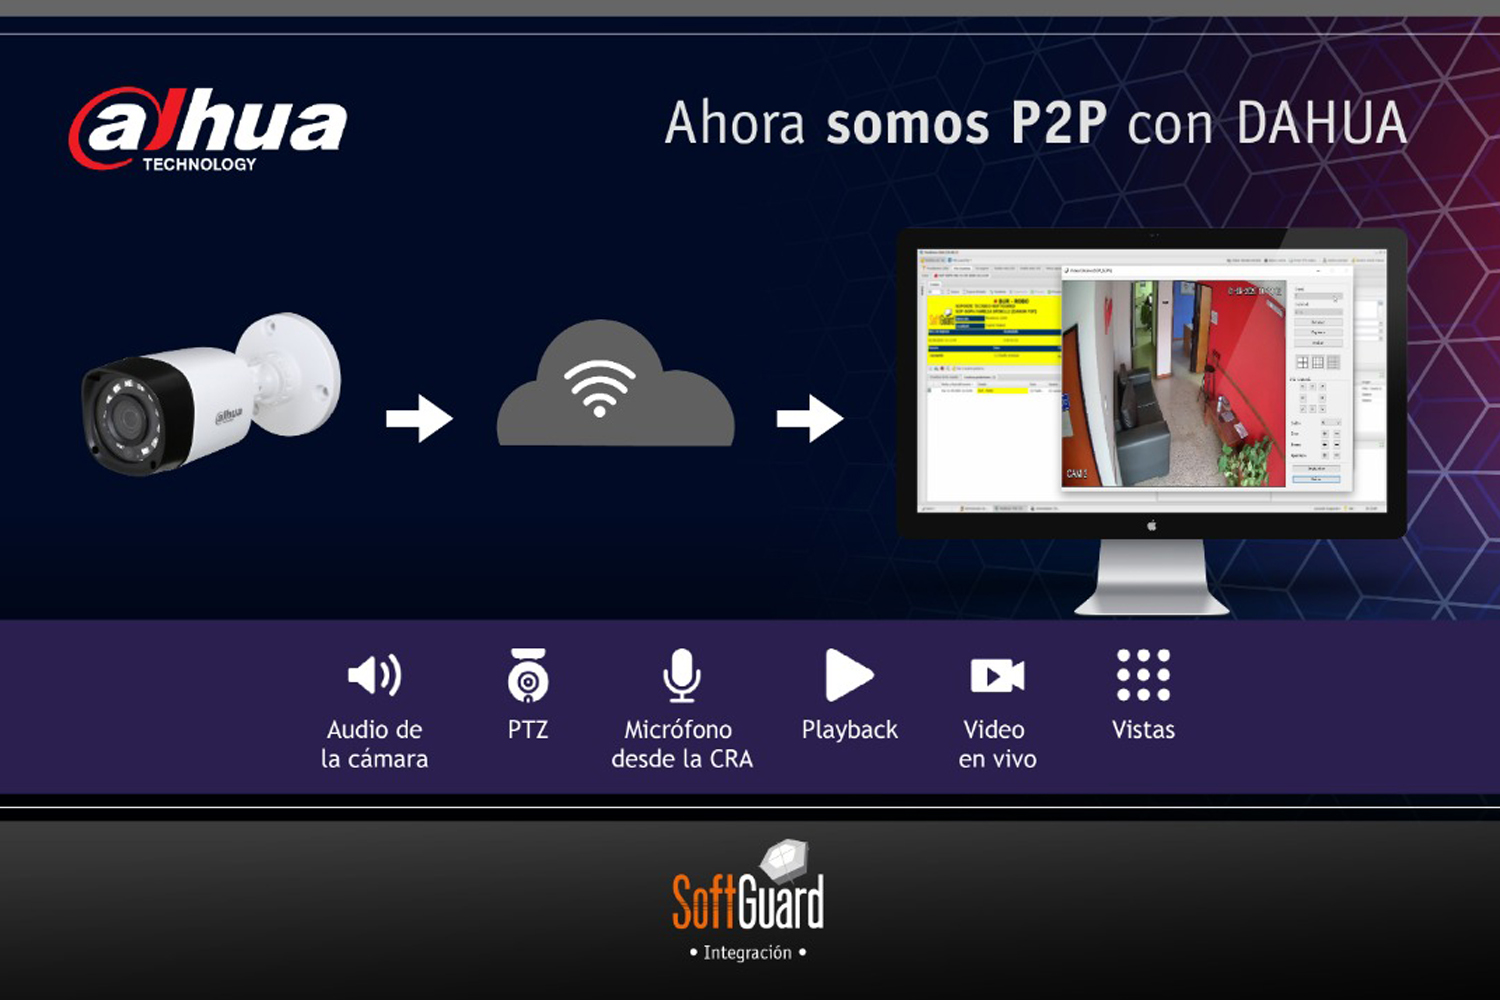 SoftGuard y Dahua Technology integración P2P